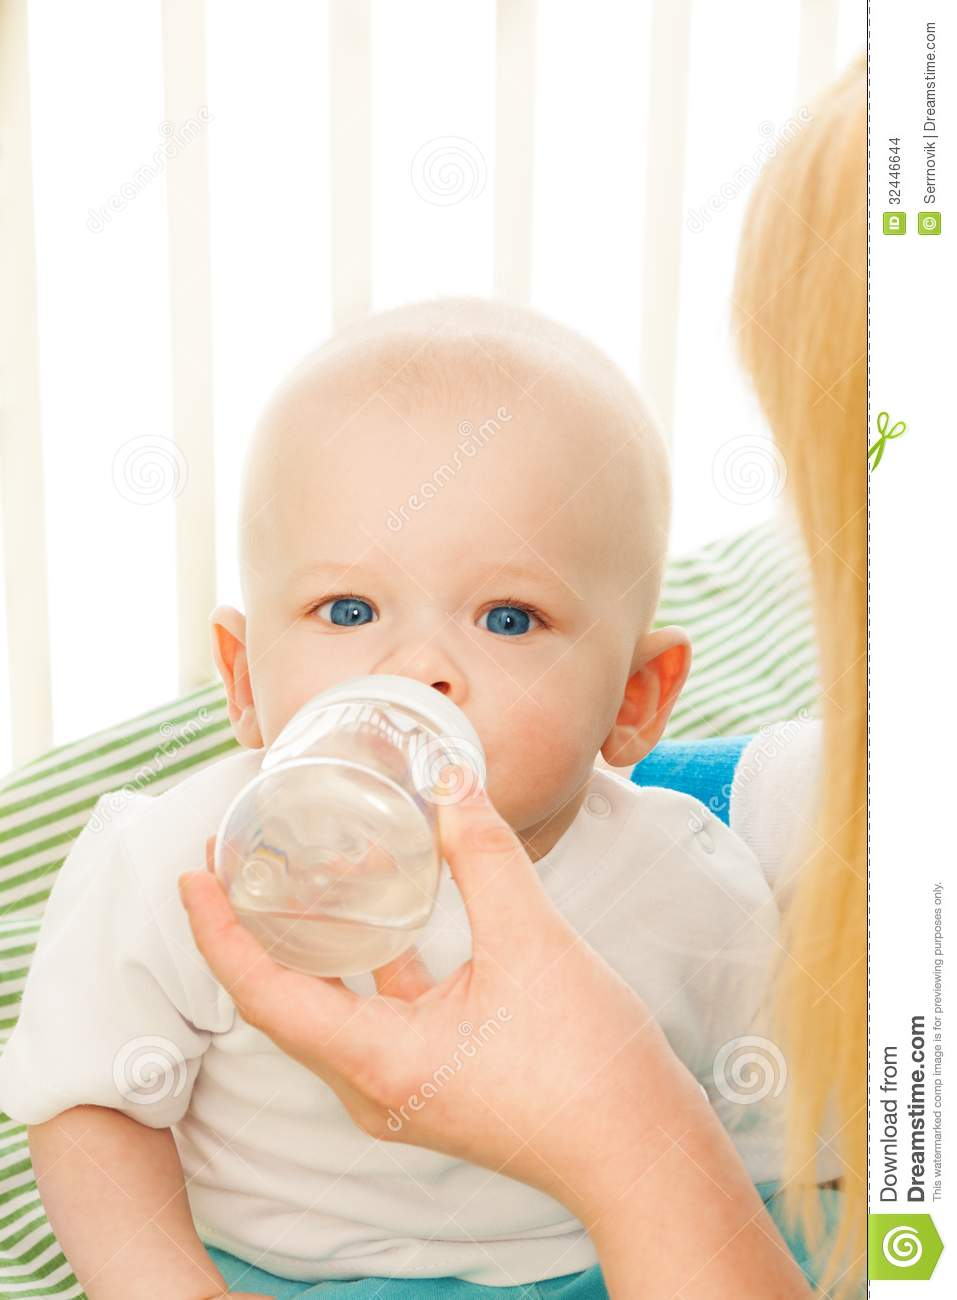 Baby Drinking Water From Bottle Stock Images - Image: 32446644